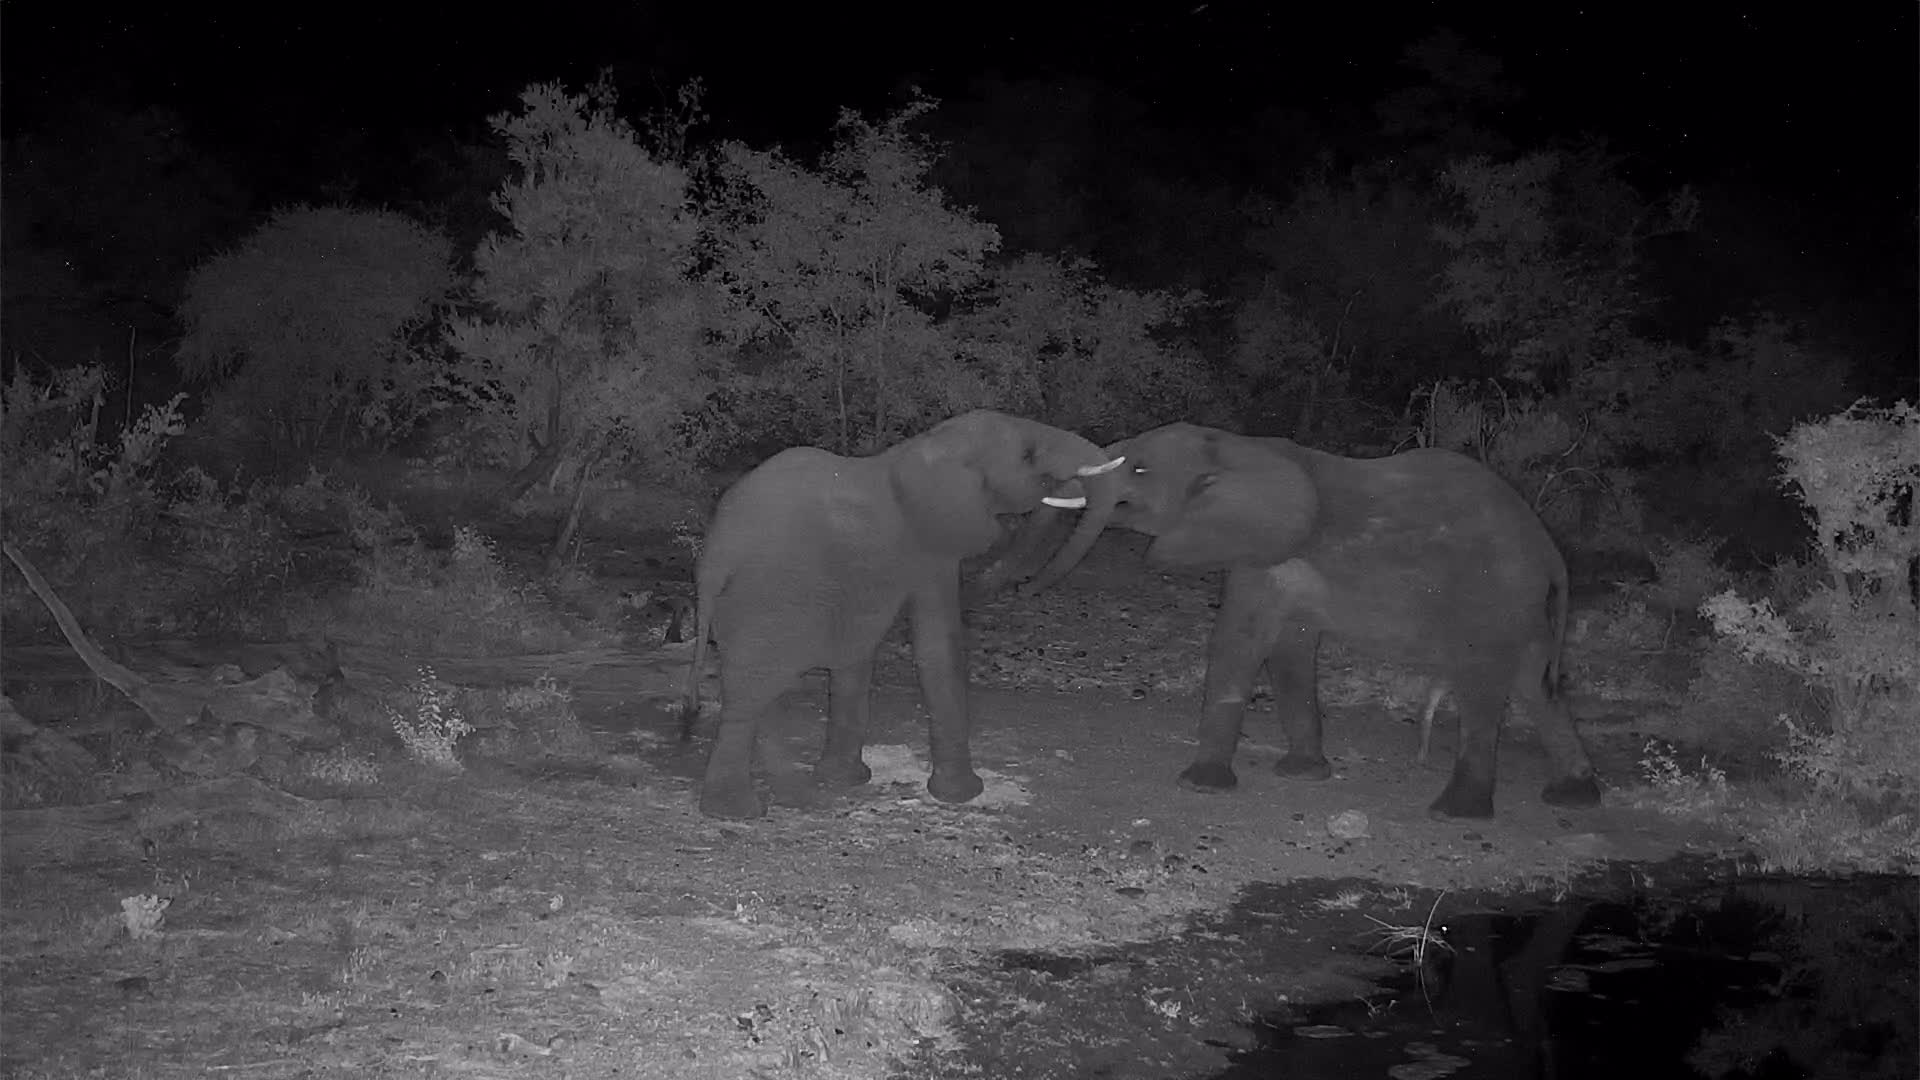 VIDEO: Young Elephants wrangling at the shore of the waterhole